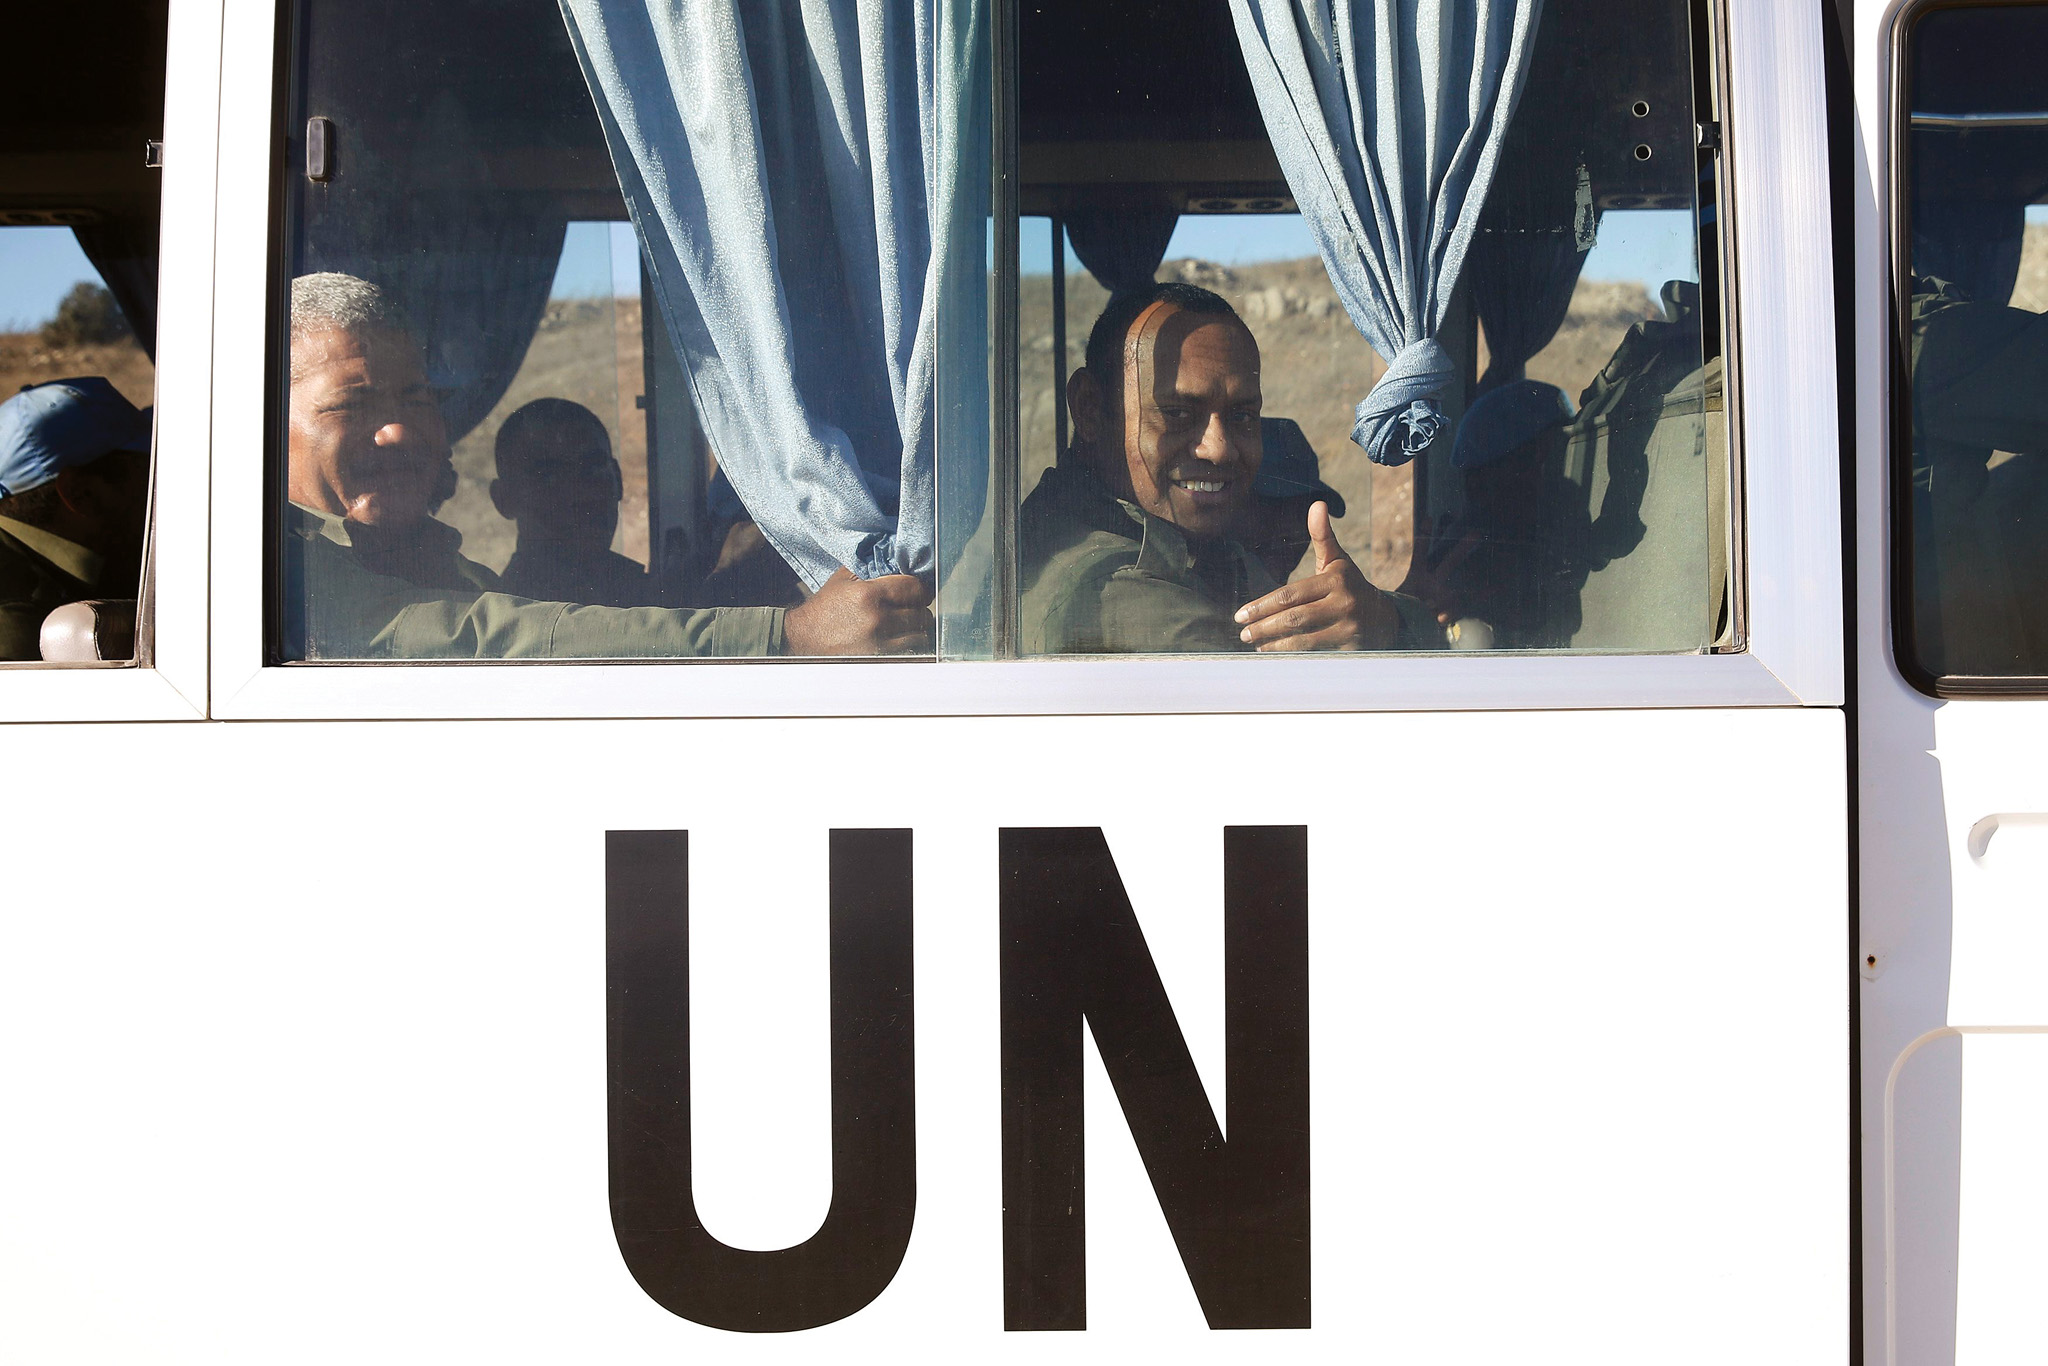 Fijian U.N. peacekeepers released by al-Qaeda-linked group Nusra Front in Syria on Thursday, gesture from inside a vehicle as they arrive in Israeli-held territory on the Golan heights...Fijian U.N. peacekeepers released by al-Qaeda-linked group Nusra Front in Syria on Thursday, gesture from inside a vehicle as they arrive in Israeli-held territory on the Golan heights September 11, 2014. The peacekeepers were taken hostage two weeks ago when several Islamist militant groups including Nusra attacked in the volatile frontier between Syria and Israel. REUTERS/Baz Ratner (POLITICS CIVIL UNREST CONFLICT)